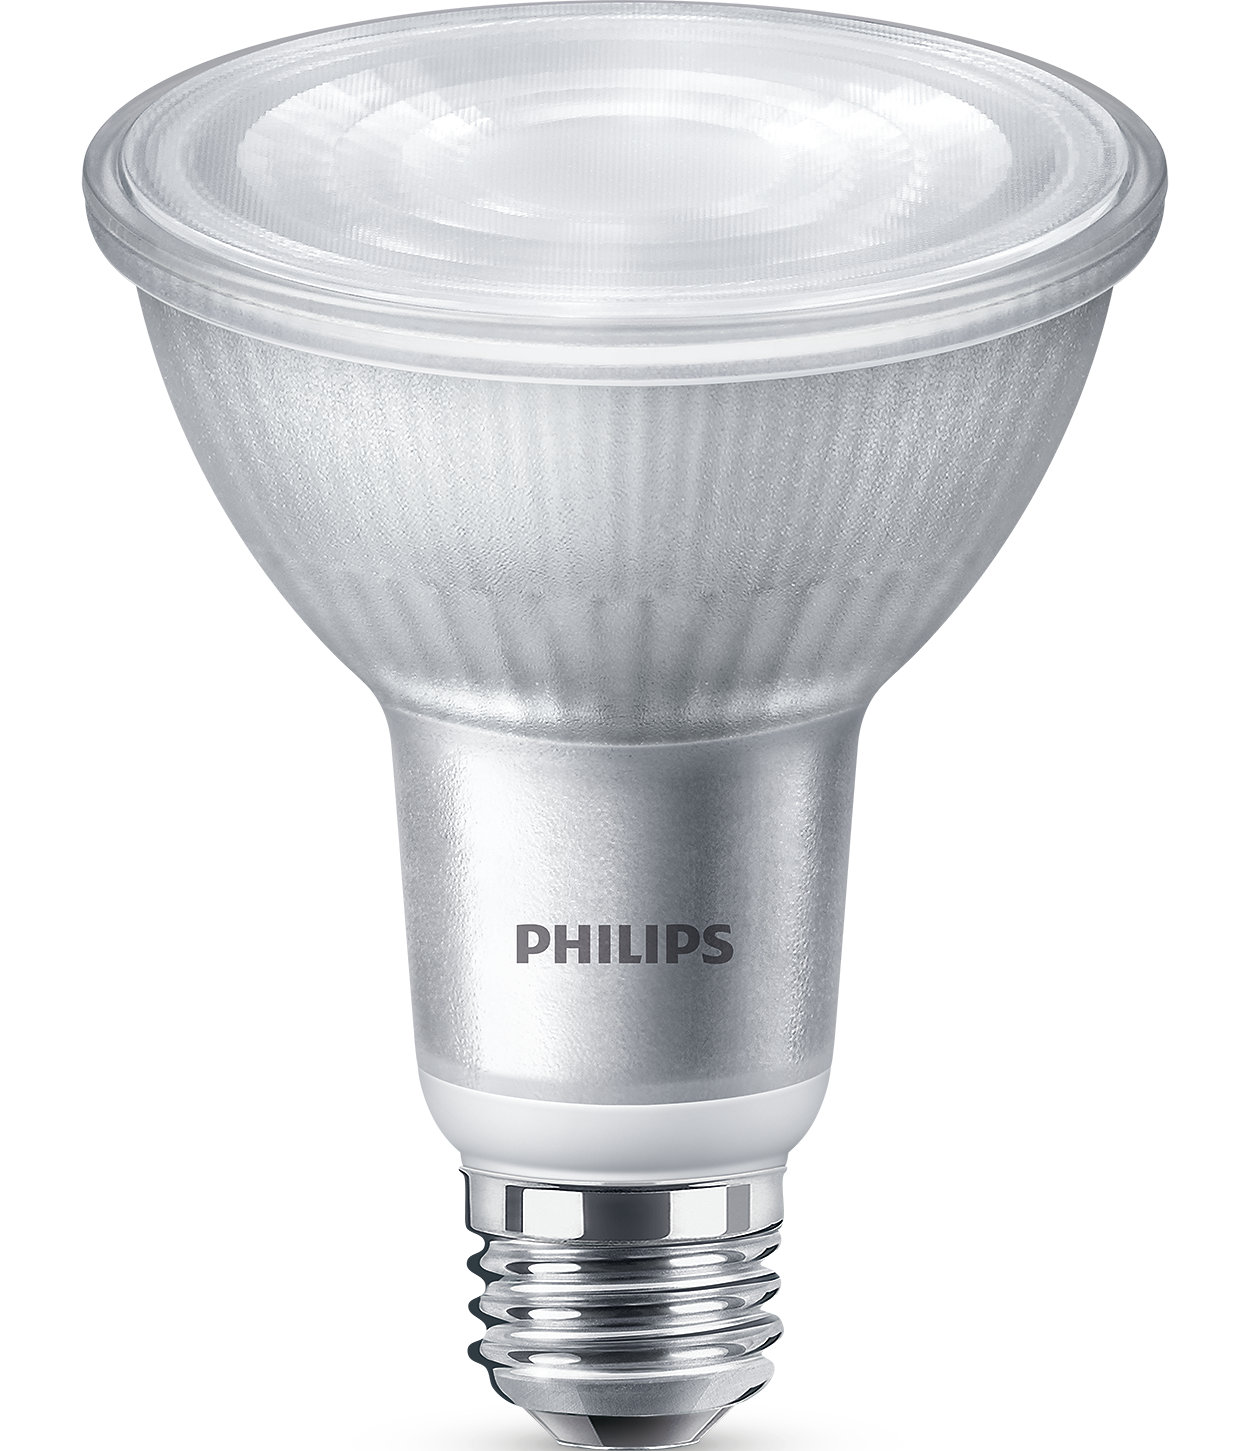 Extra bright, dimmable glass spot